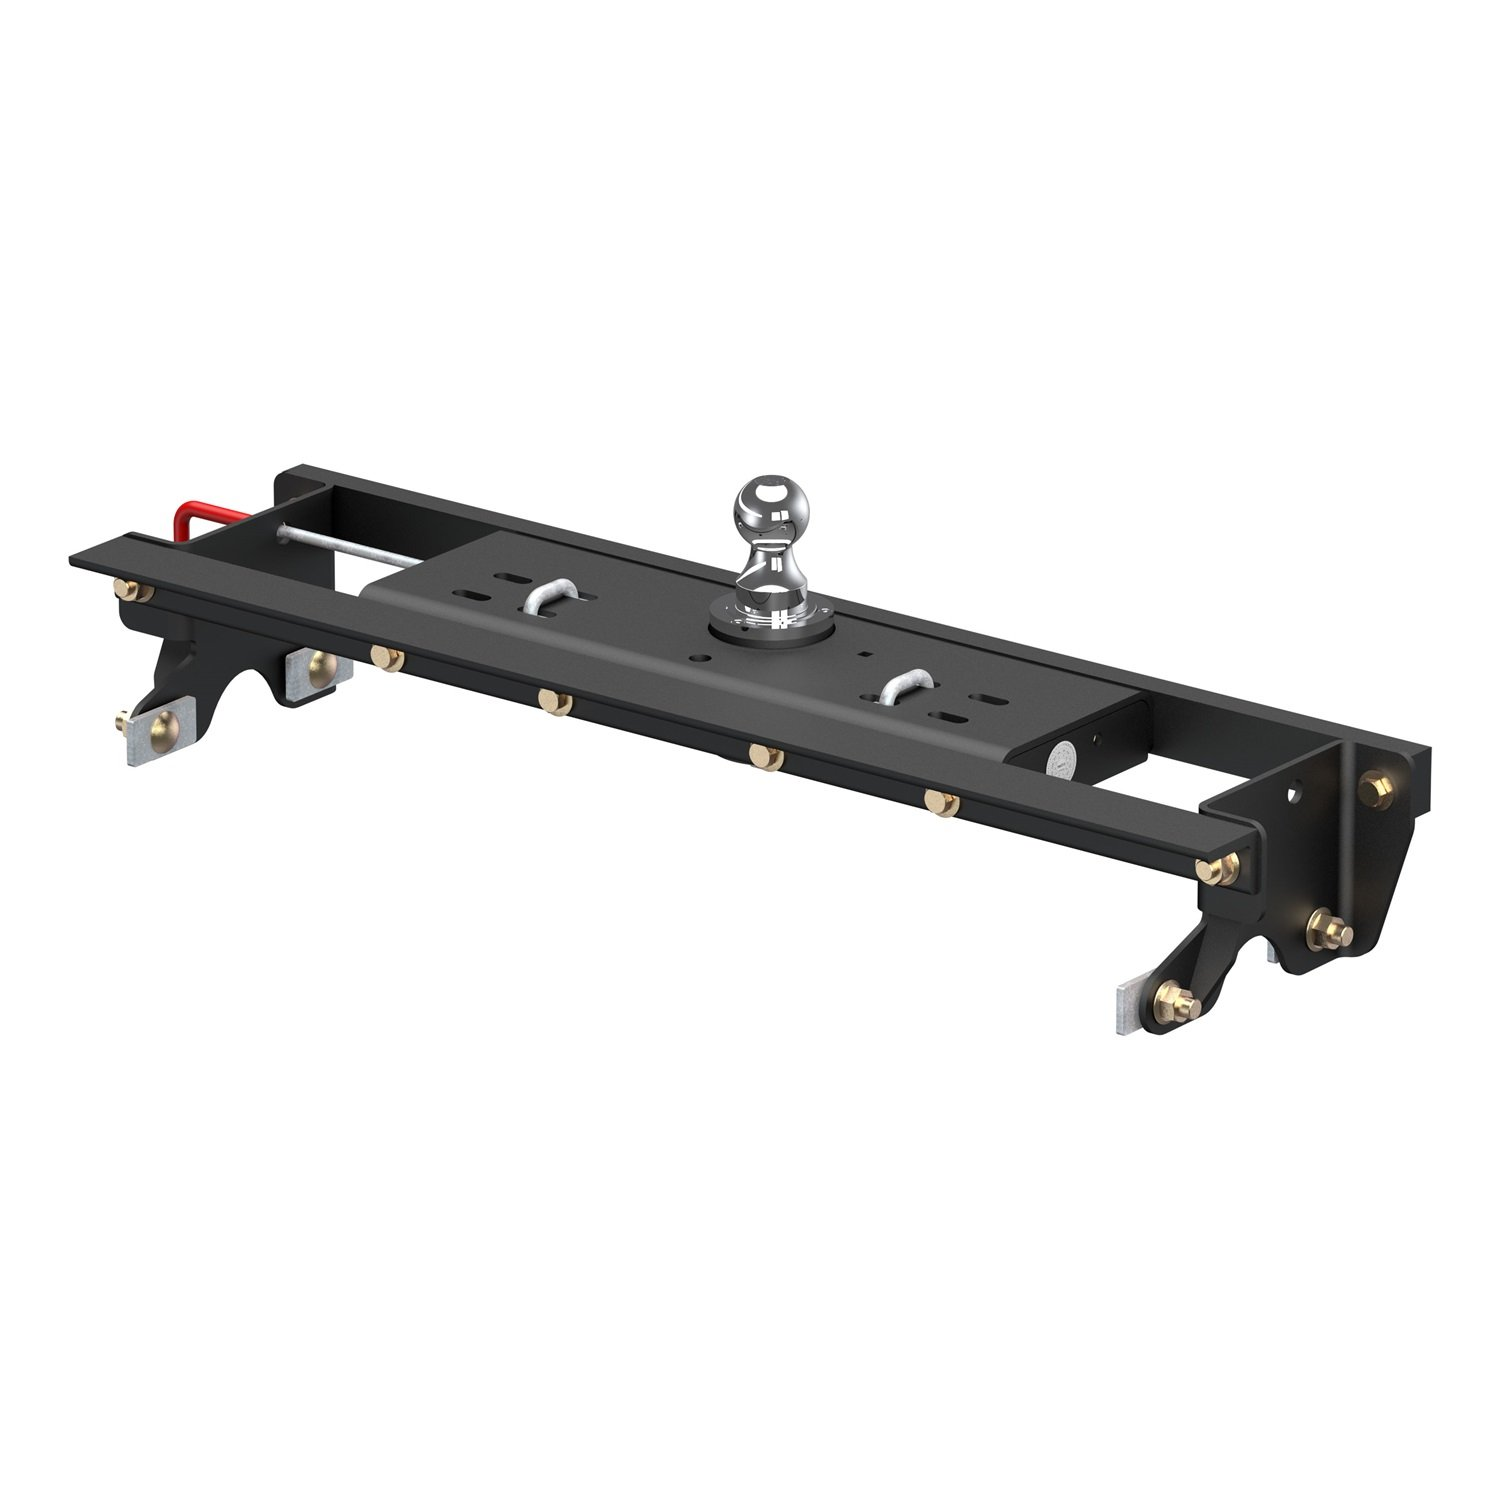 CURT 60724 Double Lock Gooseneck Hitch with Flip-and-Store Ball, 30,000 lbs., 2-5/16-Inch Ball, Fits Select Ford F-150